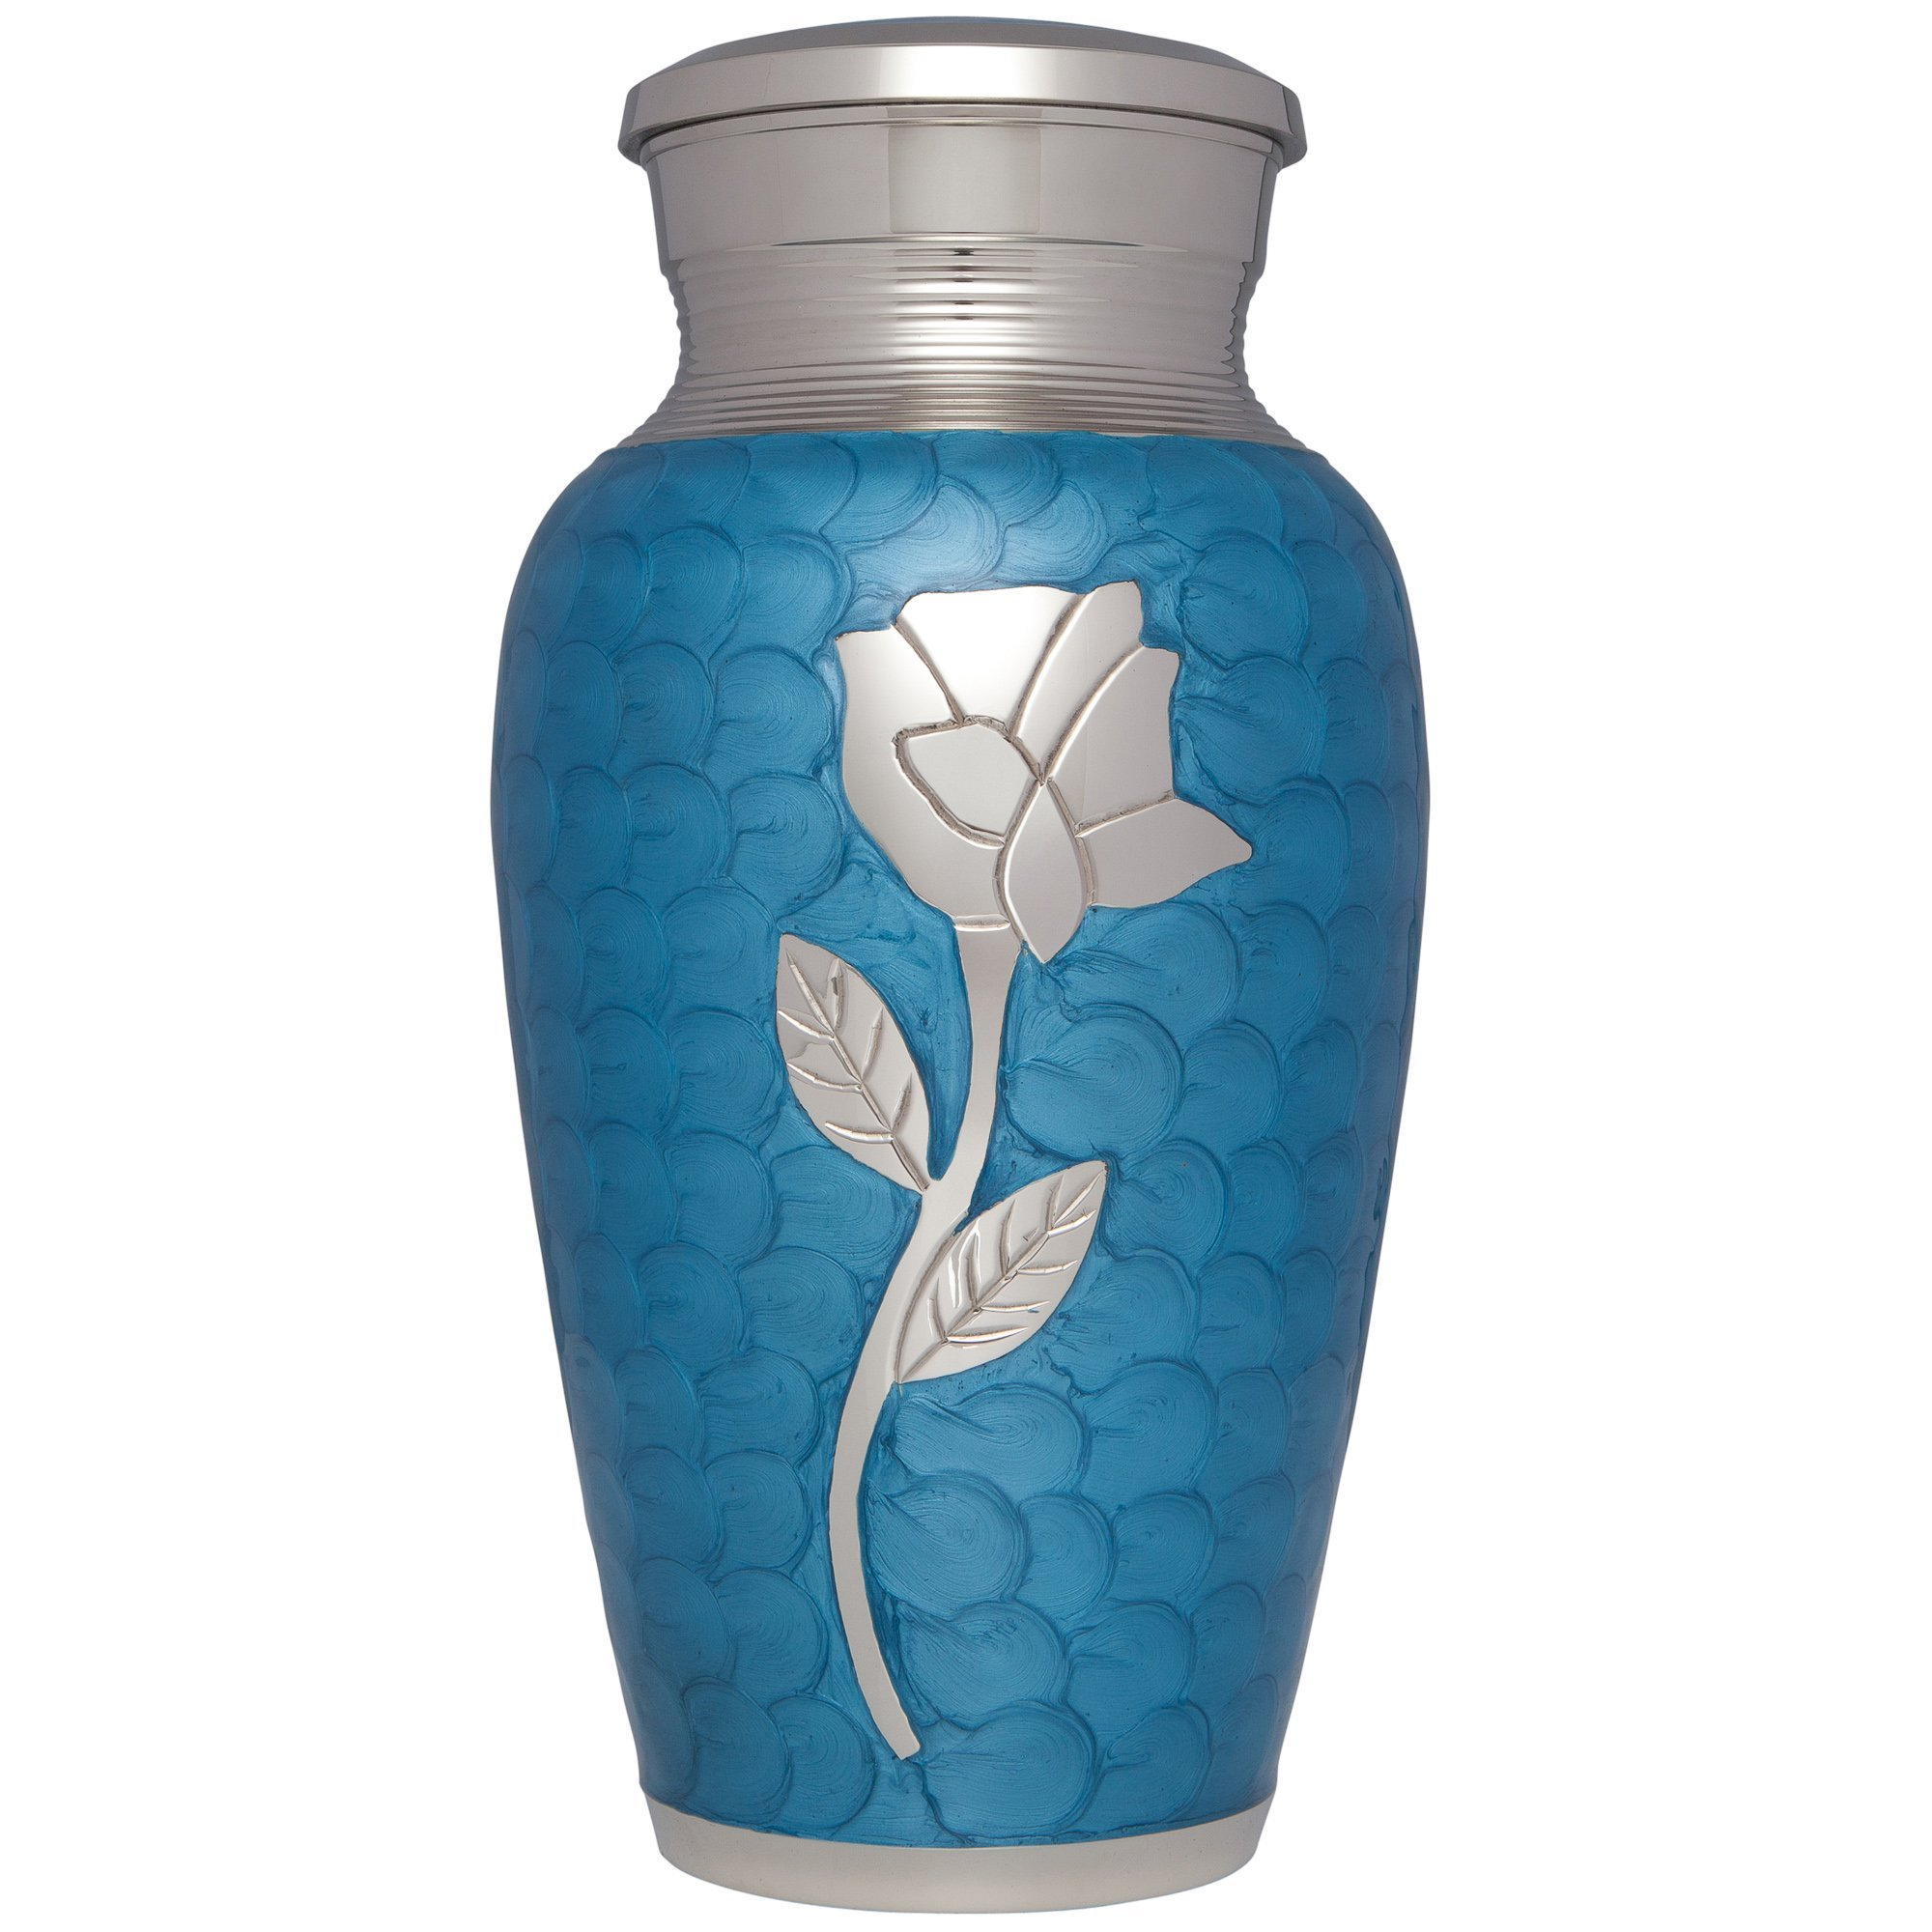 Blue Funeral Urn by Liliane Memorials - Cremation Urn for Human Ashes - Hand Made in Brass - Suitable for Cemetery Burial or Niche - Large Size fits remains of Adults up to 200 lbs- Perugia Blue Model